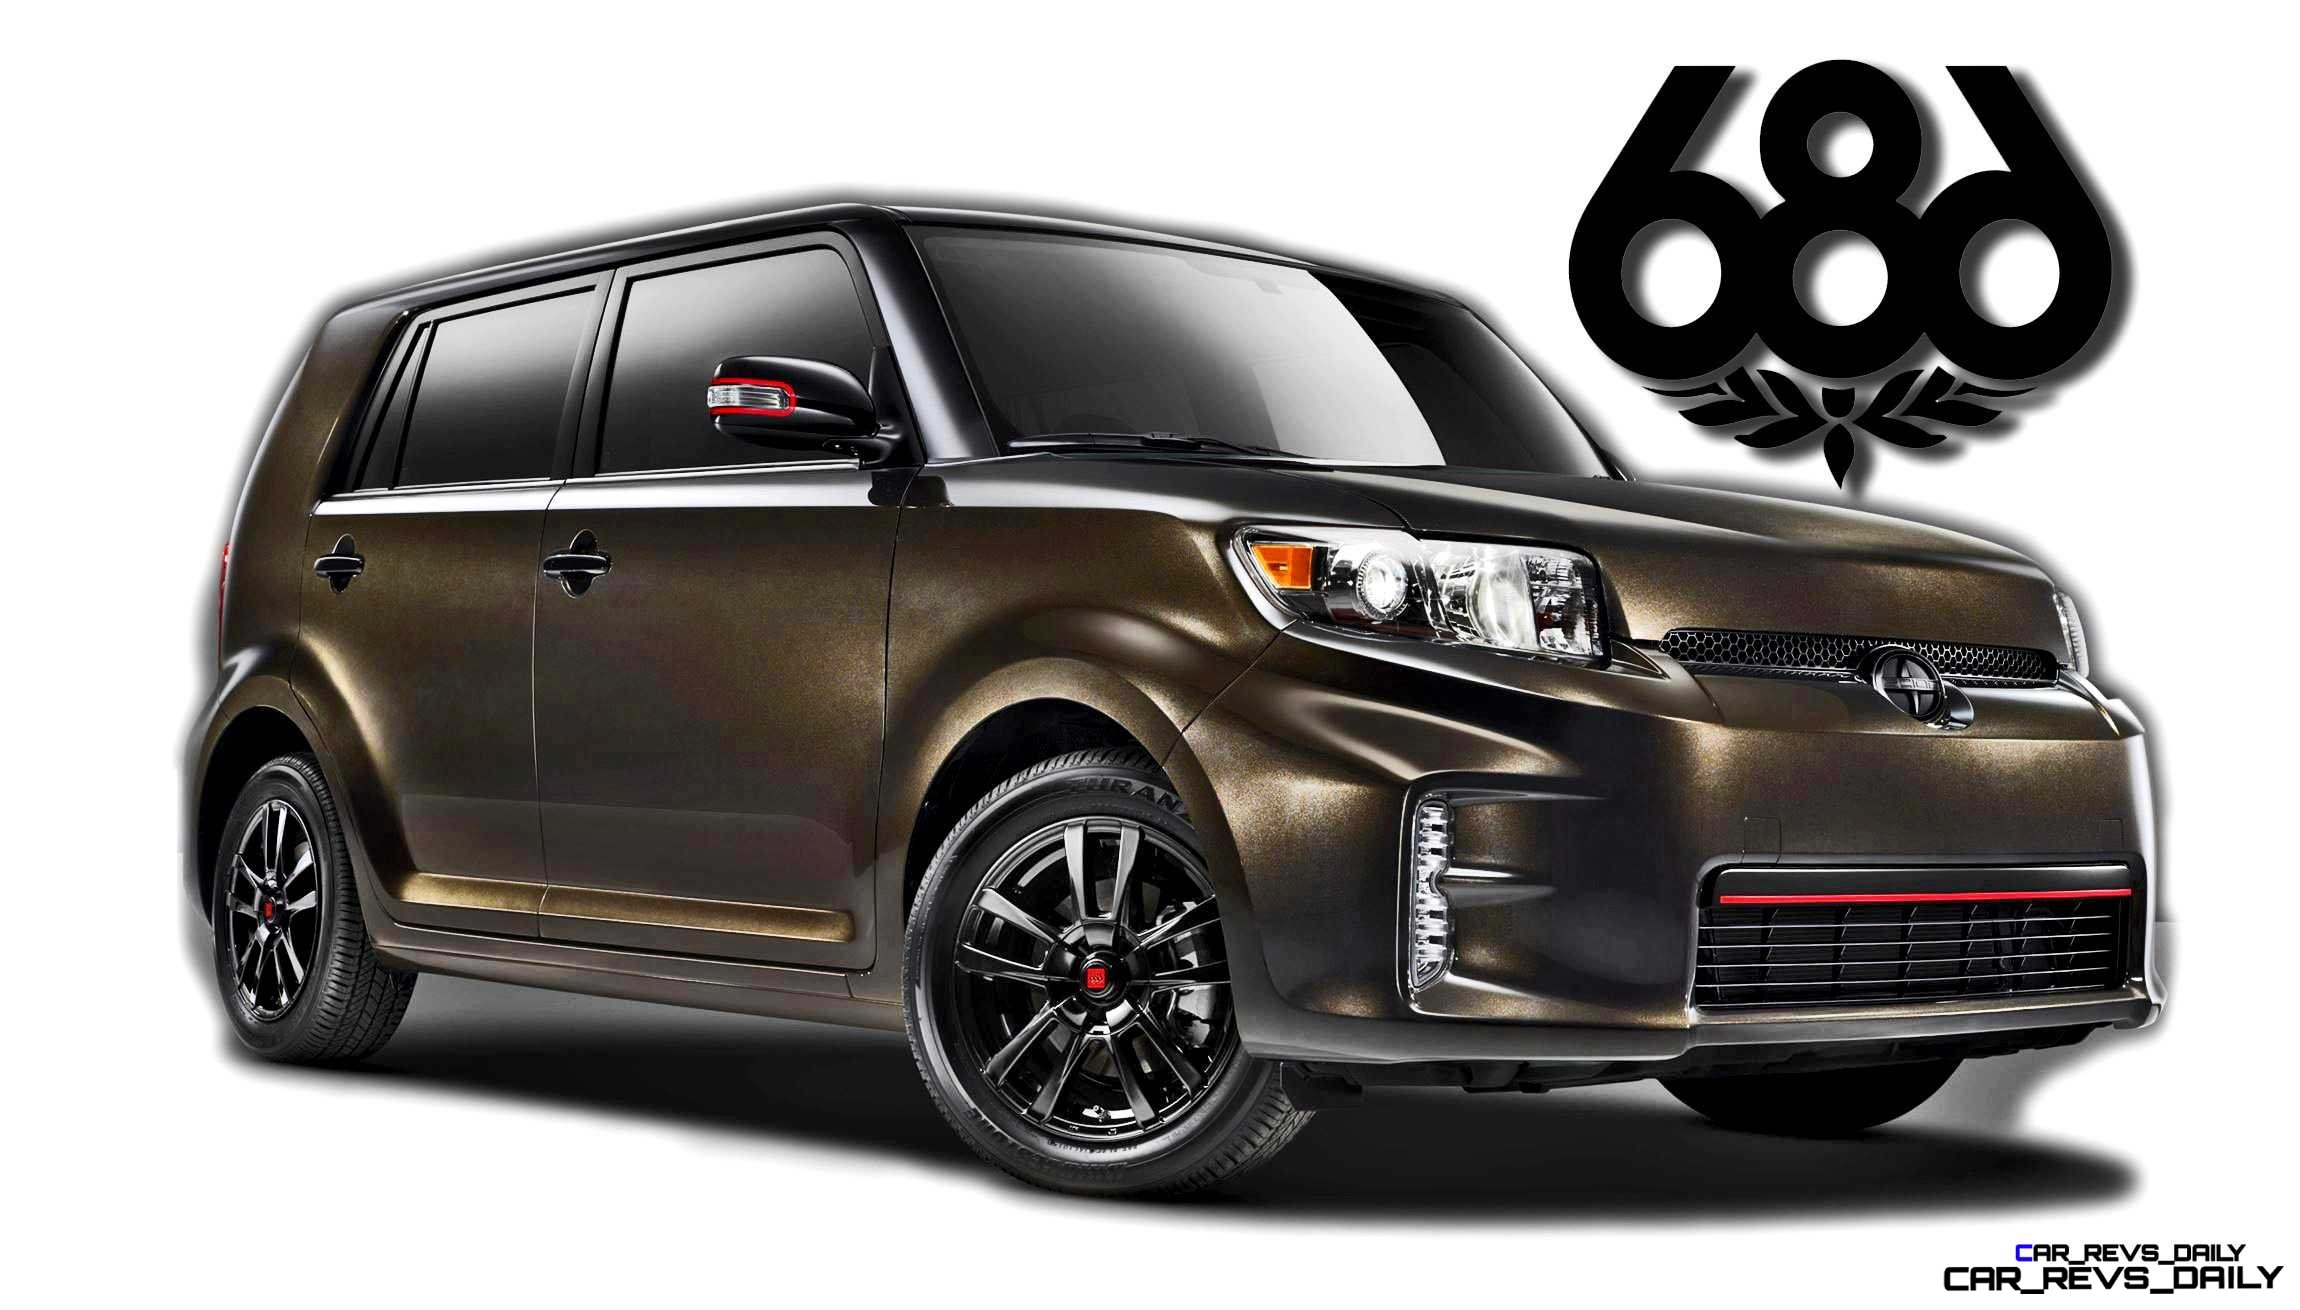 2015 scion xb 686 parklan edition. Black Bedroom Furniture Sets. Home Design Ideas